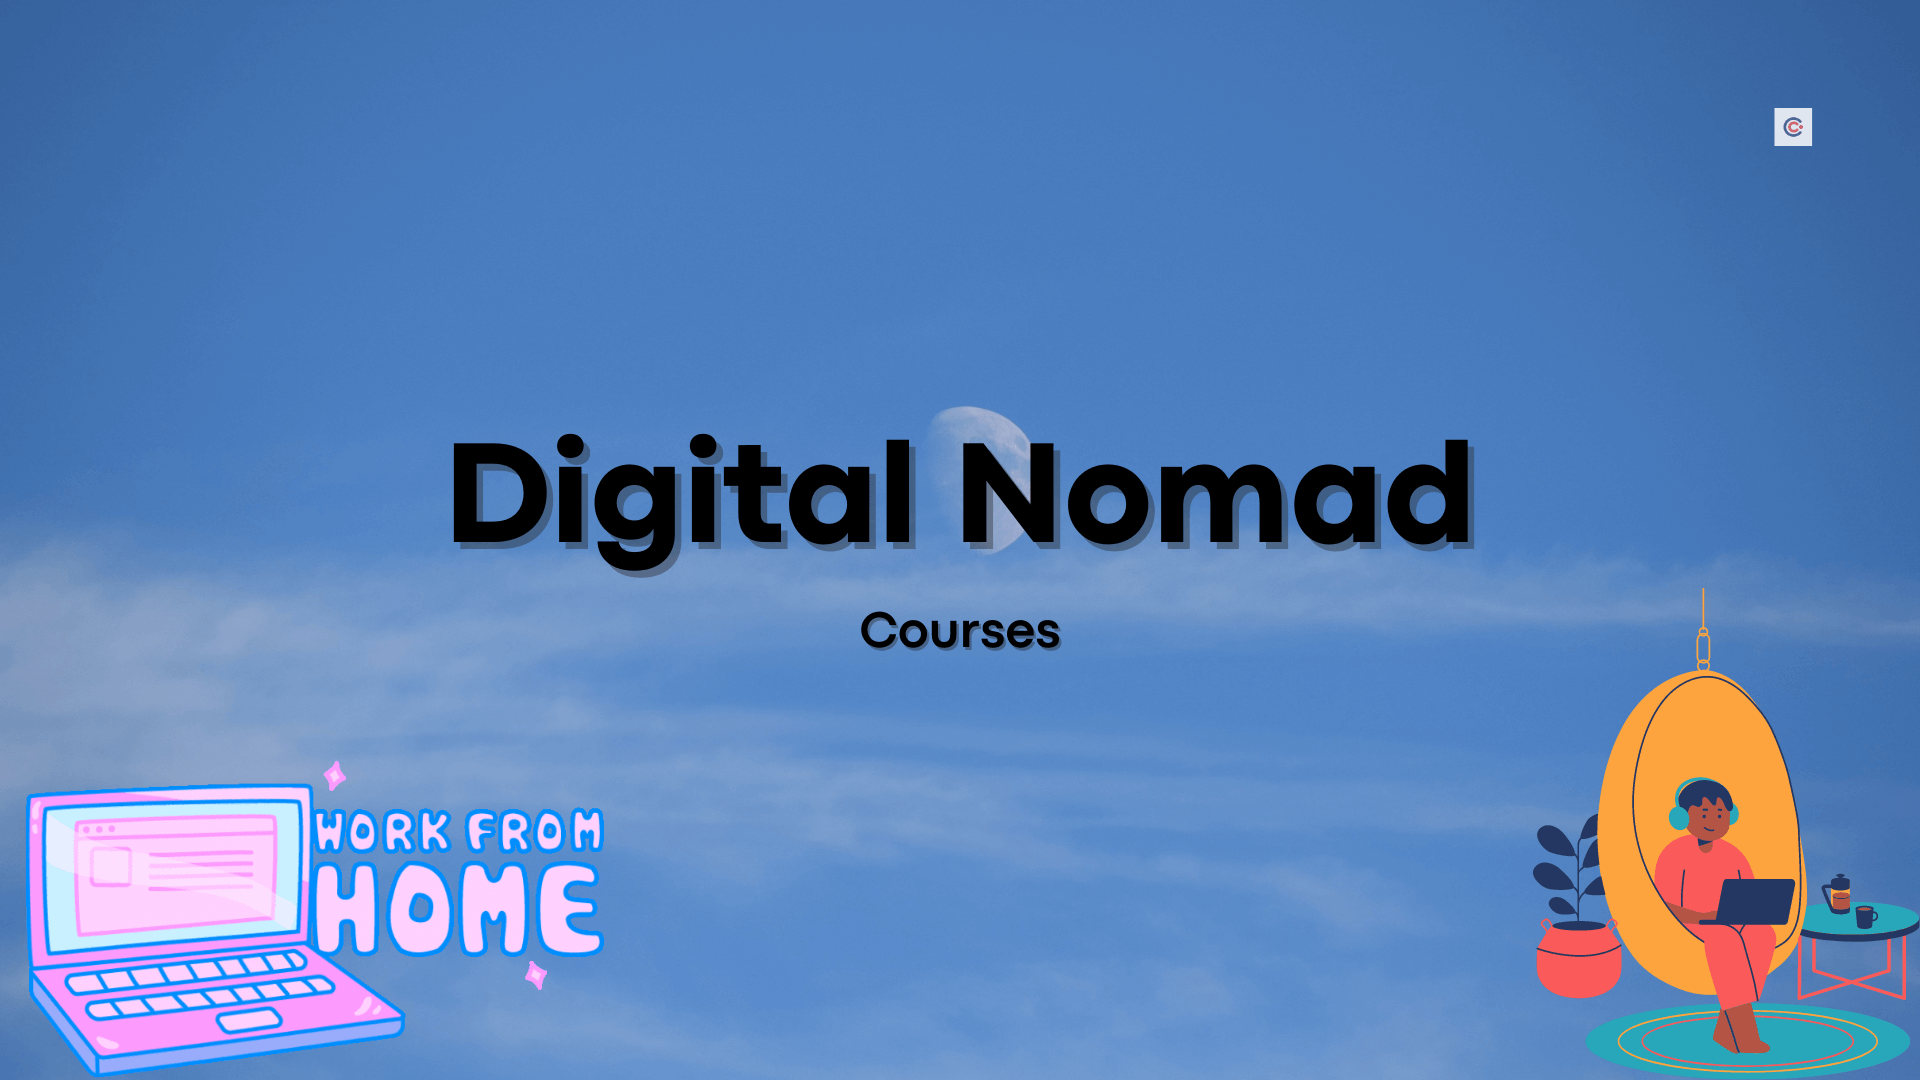 5 Best Digital Nomad Courses - How To Be A Successful Digital Nomad